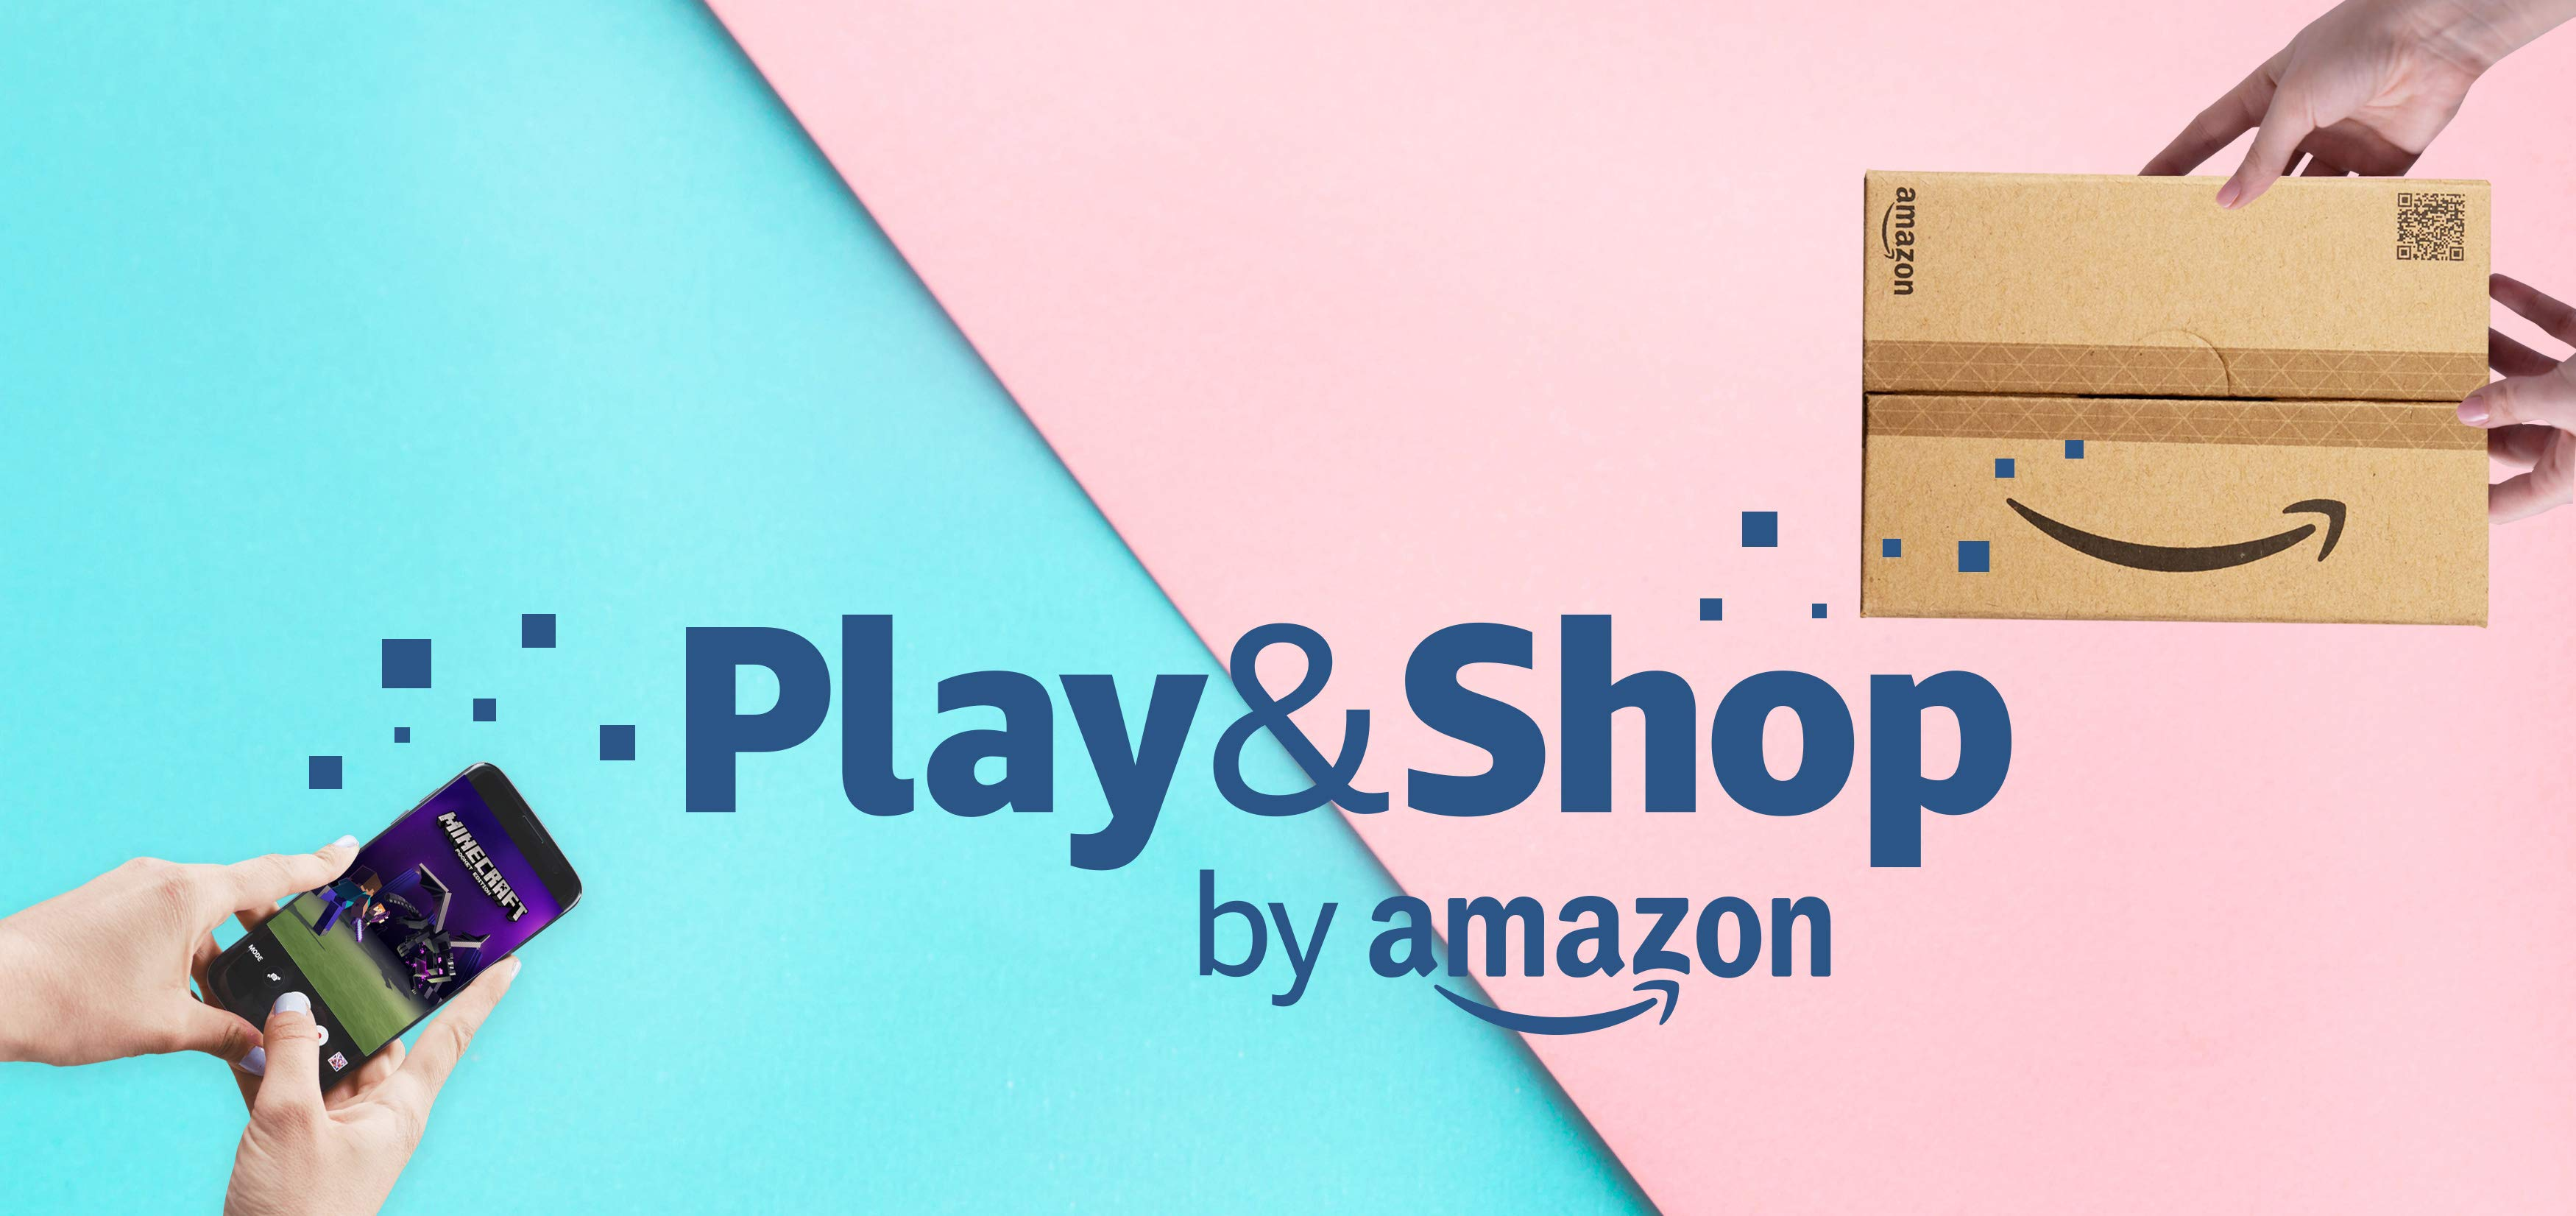 Play&Shop by Amazon